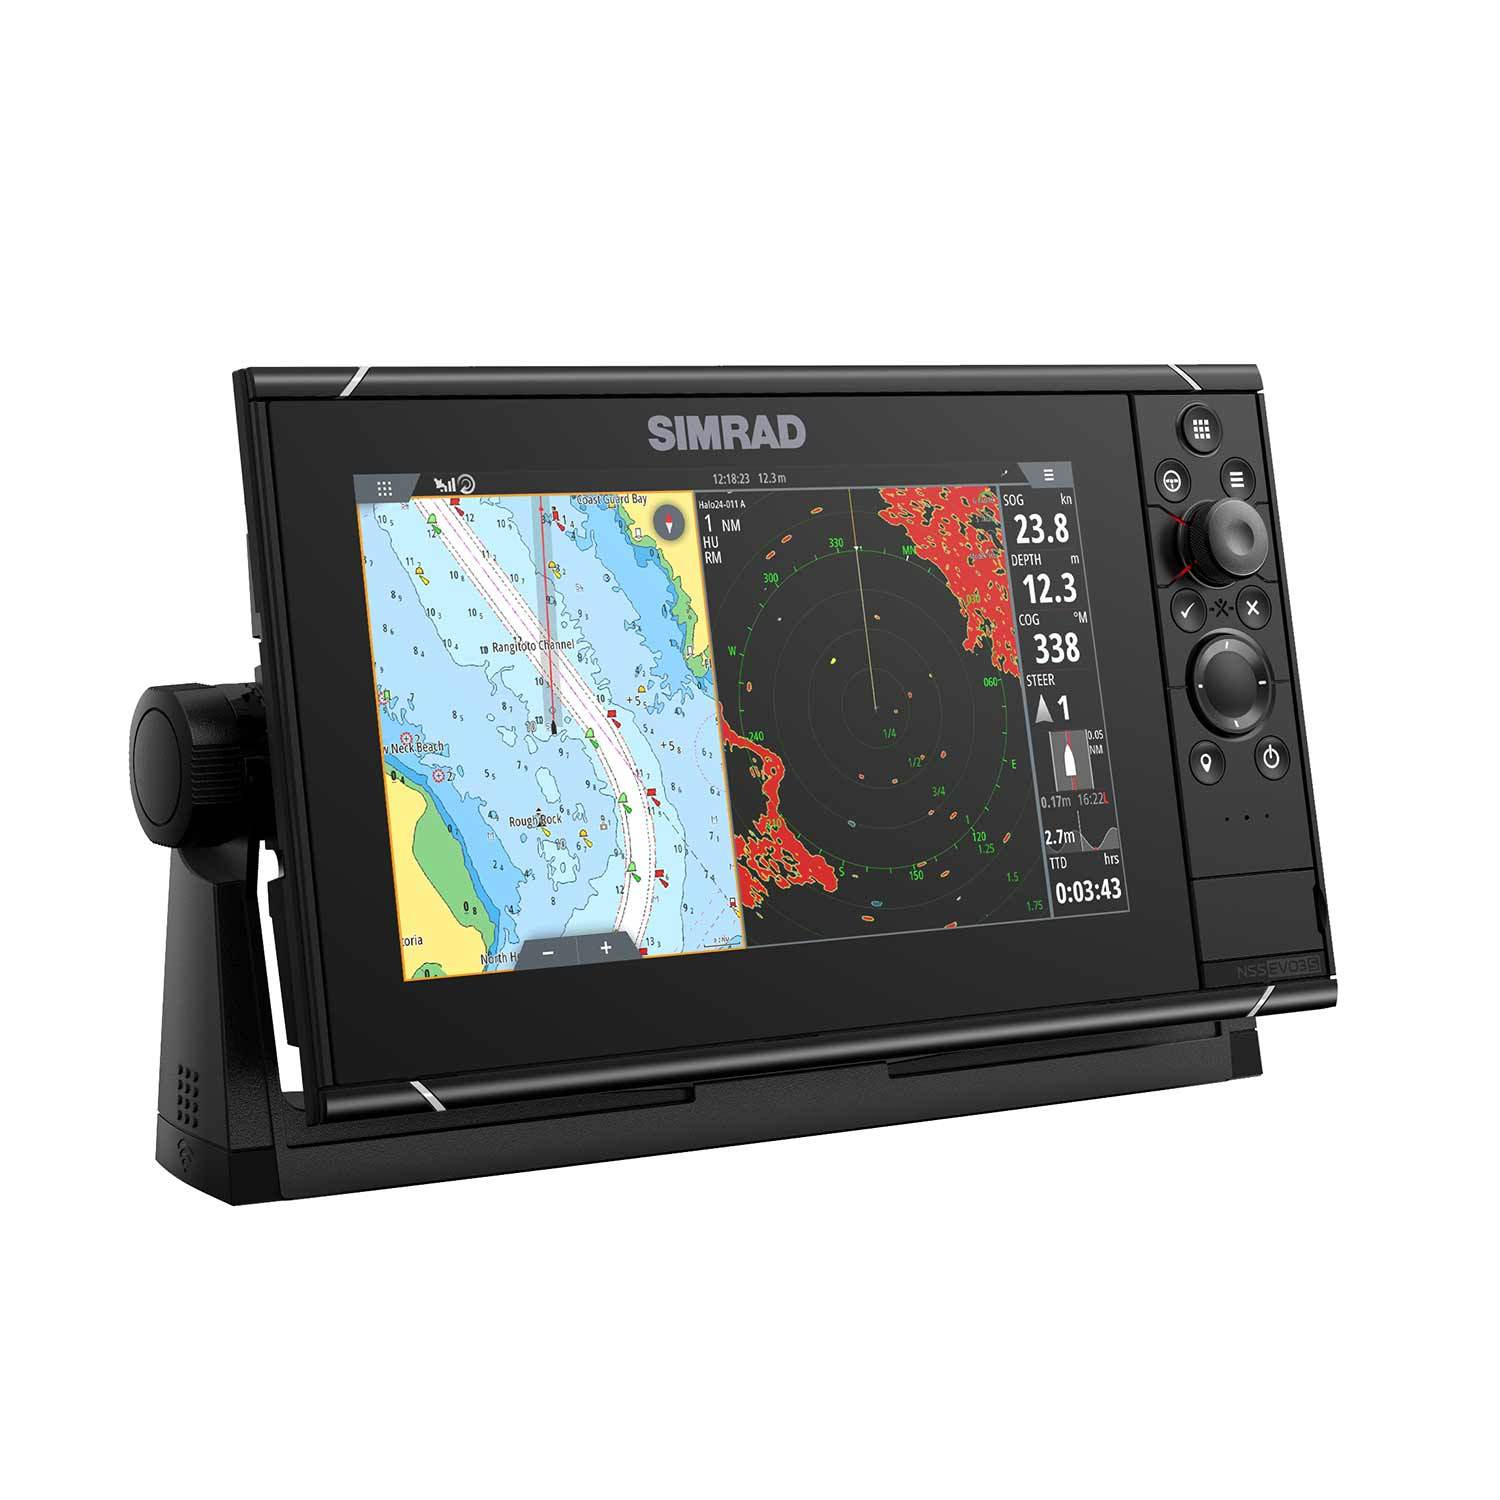 NSS9 Evo3 S Multifunction Display with C-MAP Charts, HALO 20+ Bundle